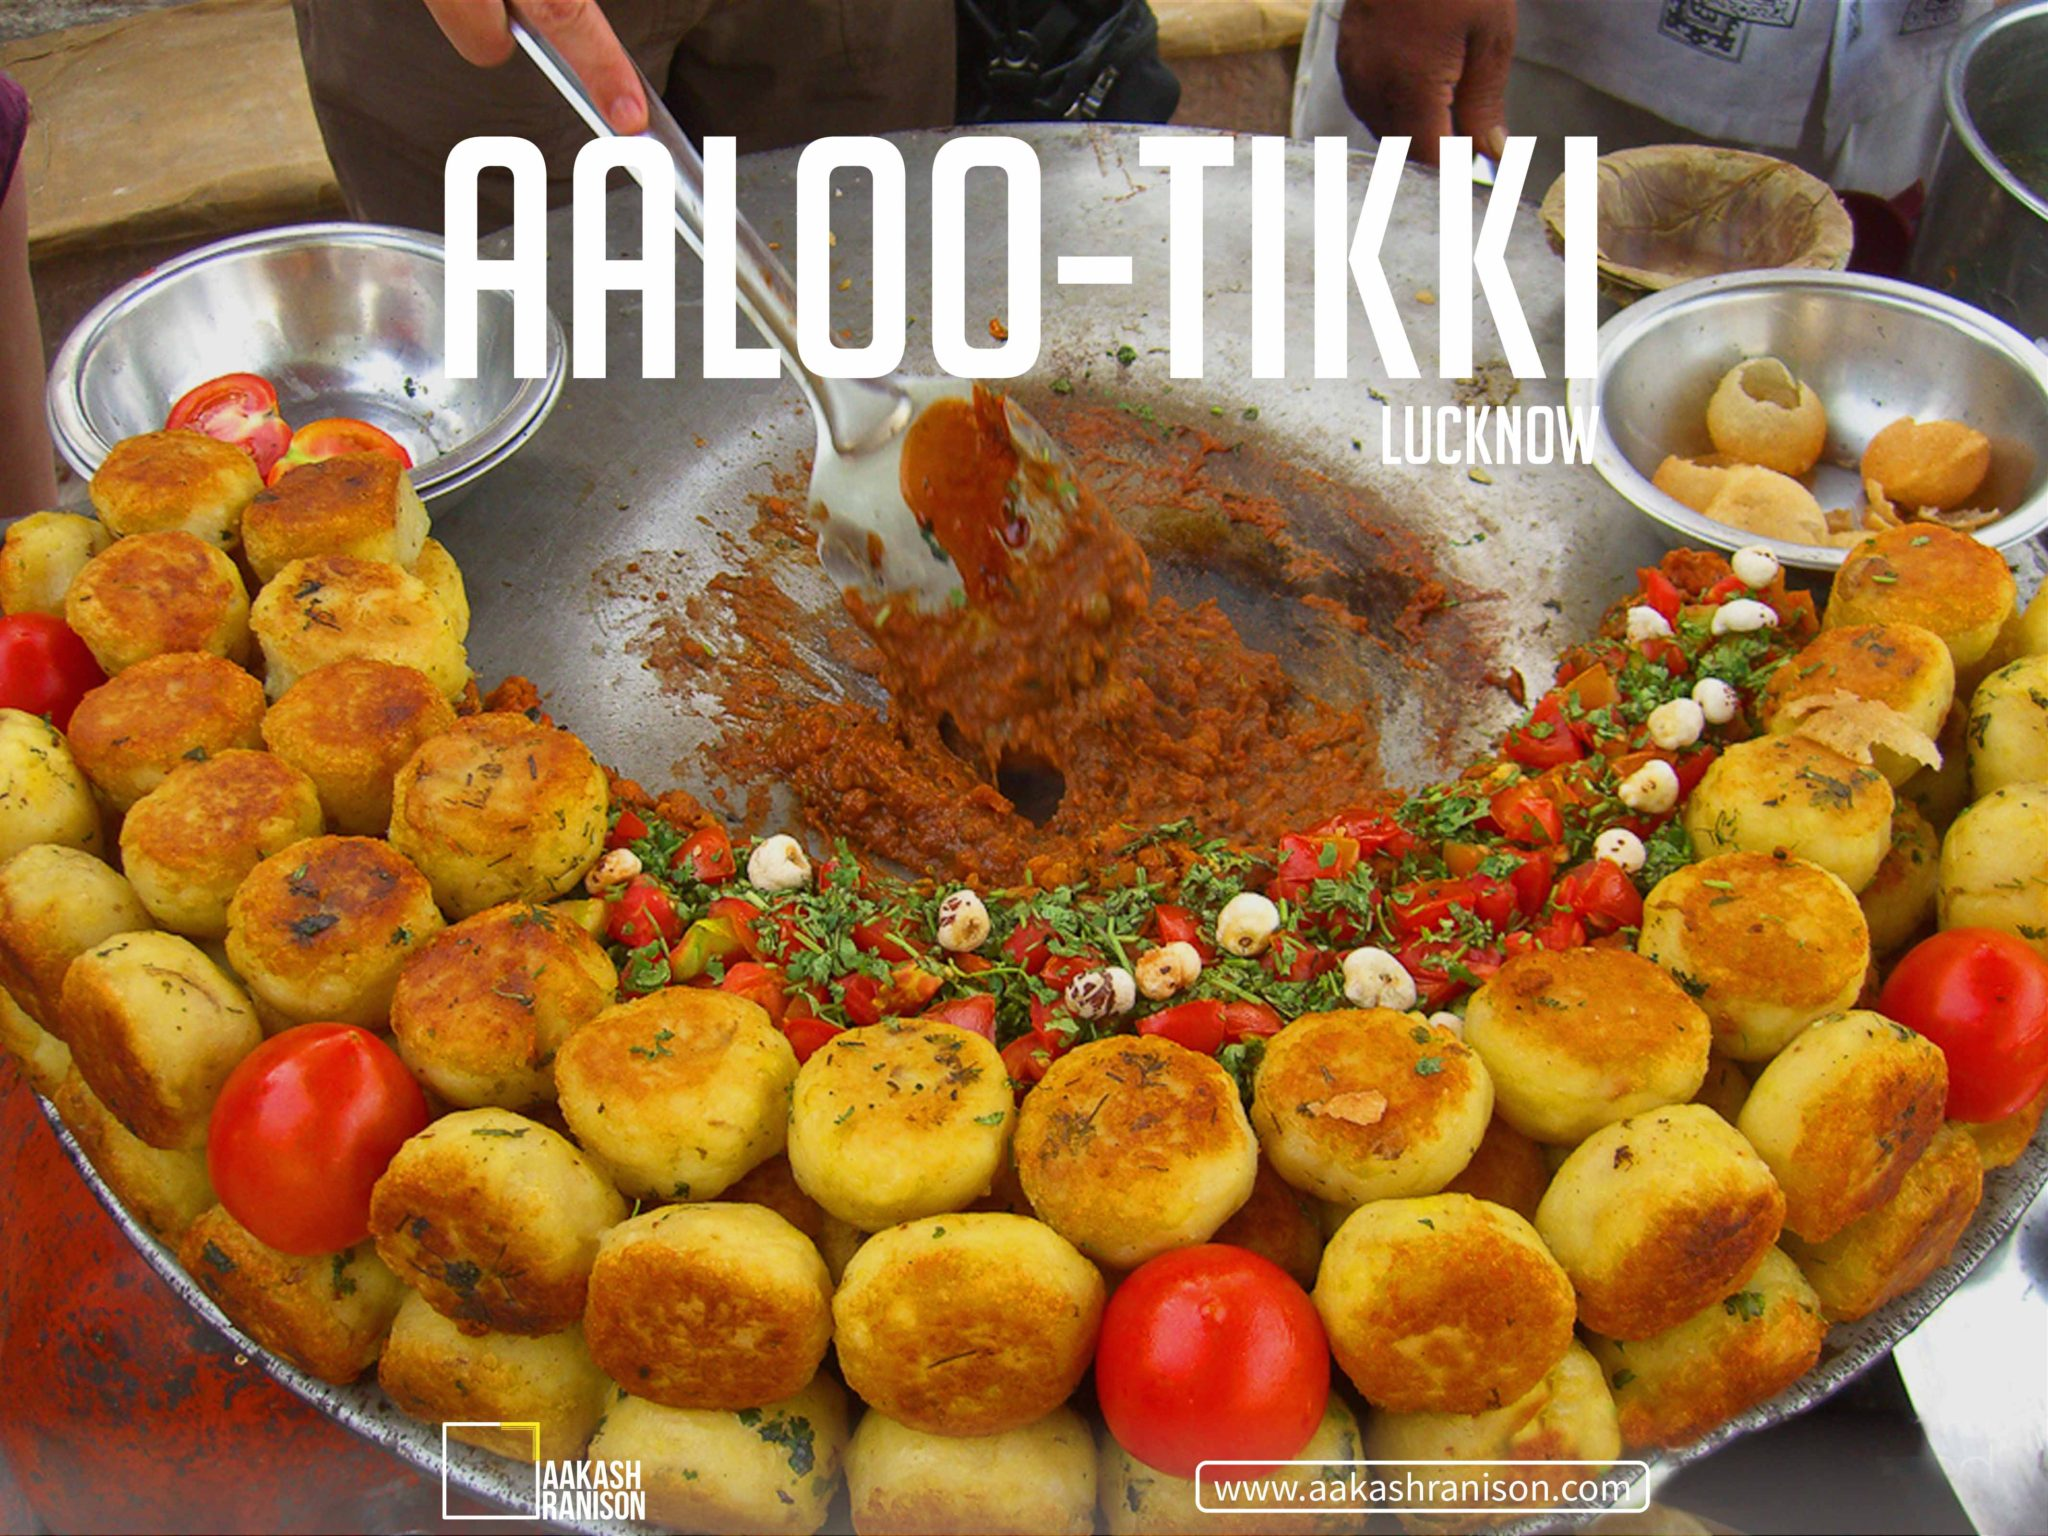 aakash-ranison-solo-indian-travel-blogger-travel-poster-series-street-food-india